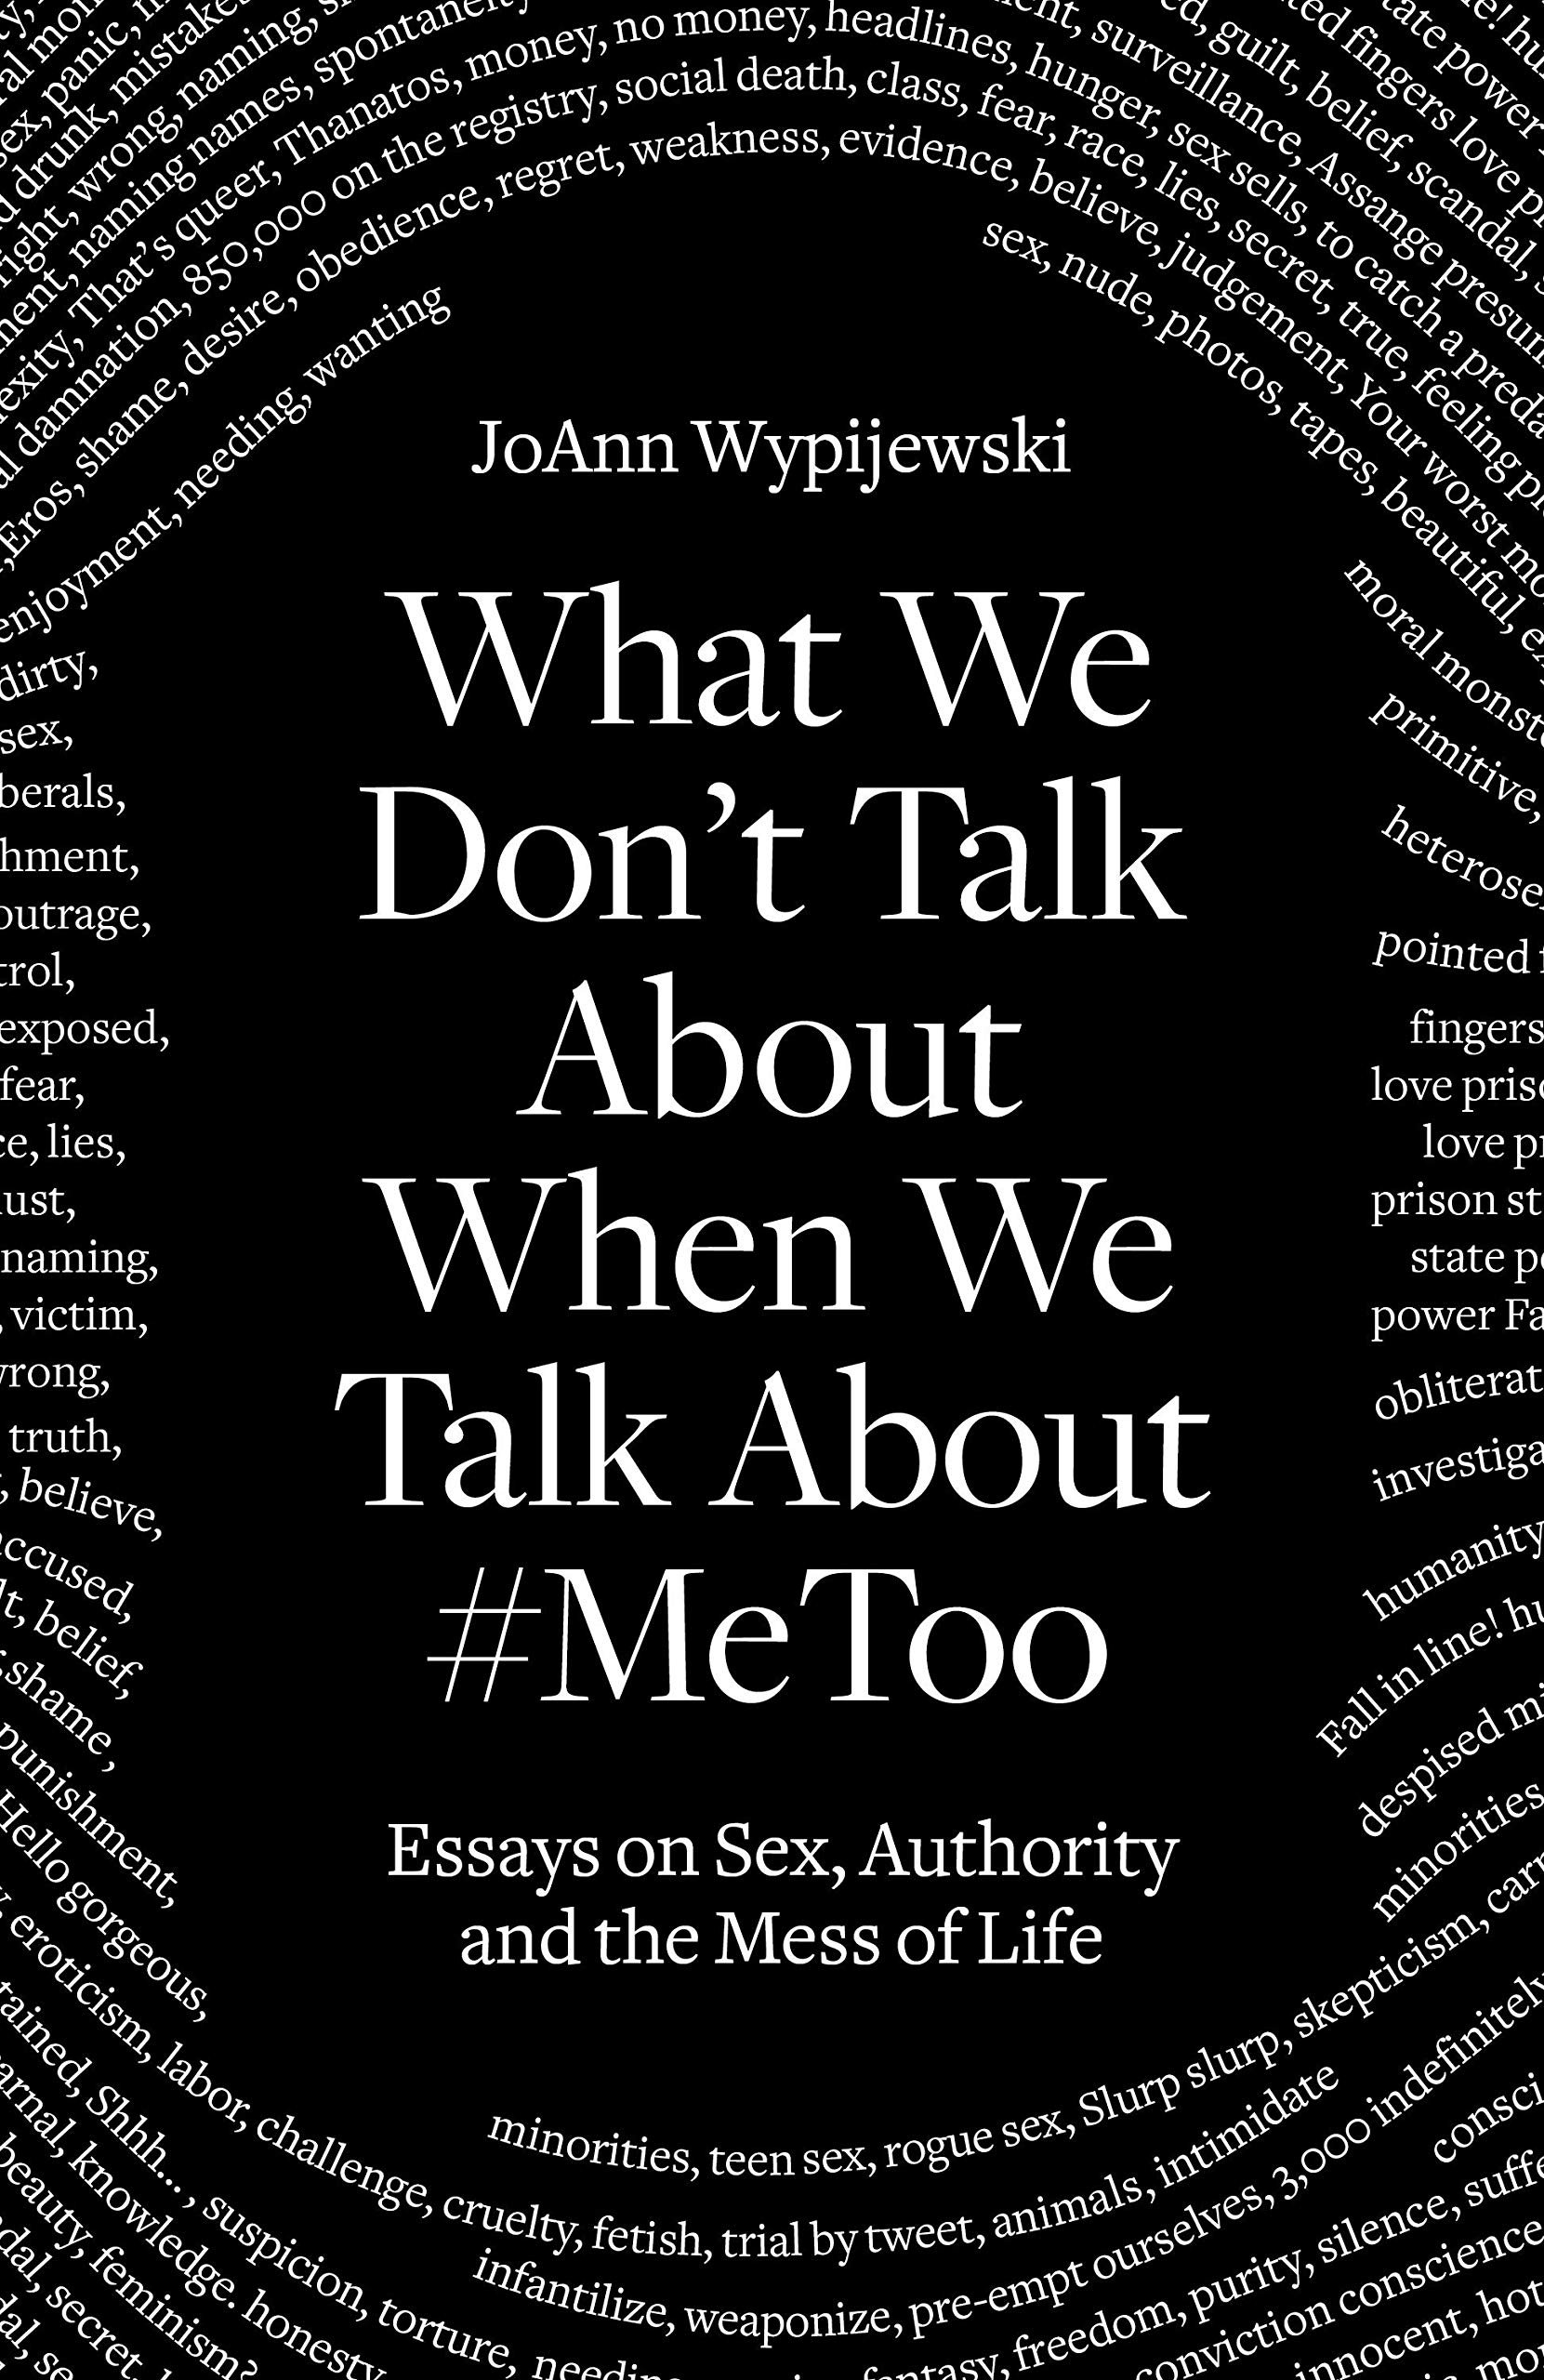 What We Don't Talk About When We Talk About #MeToo: JoAnn Wypijewski (VIRTUAL EVENT: In Conversation with Judith Levine) | McNally Jackson Books